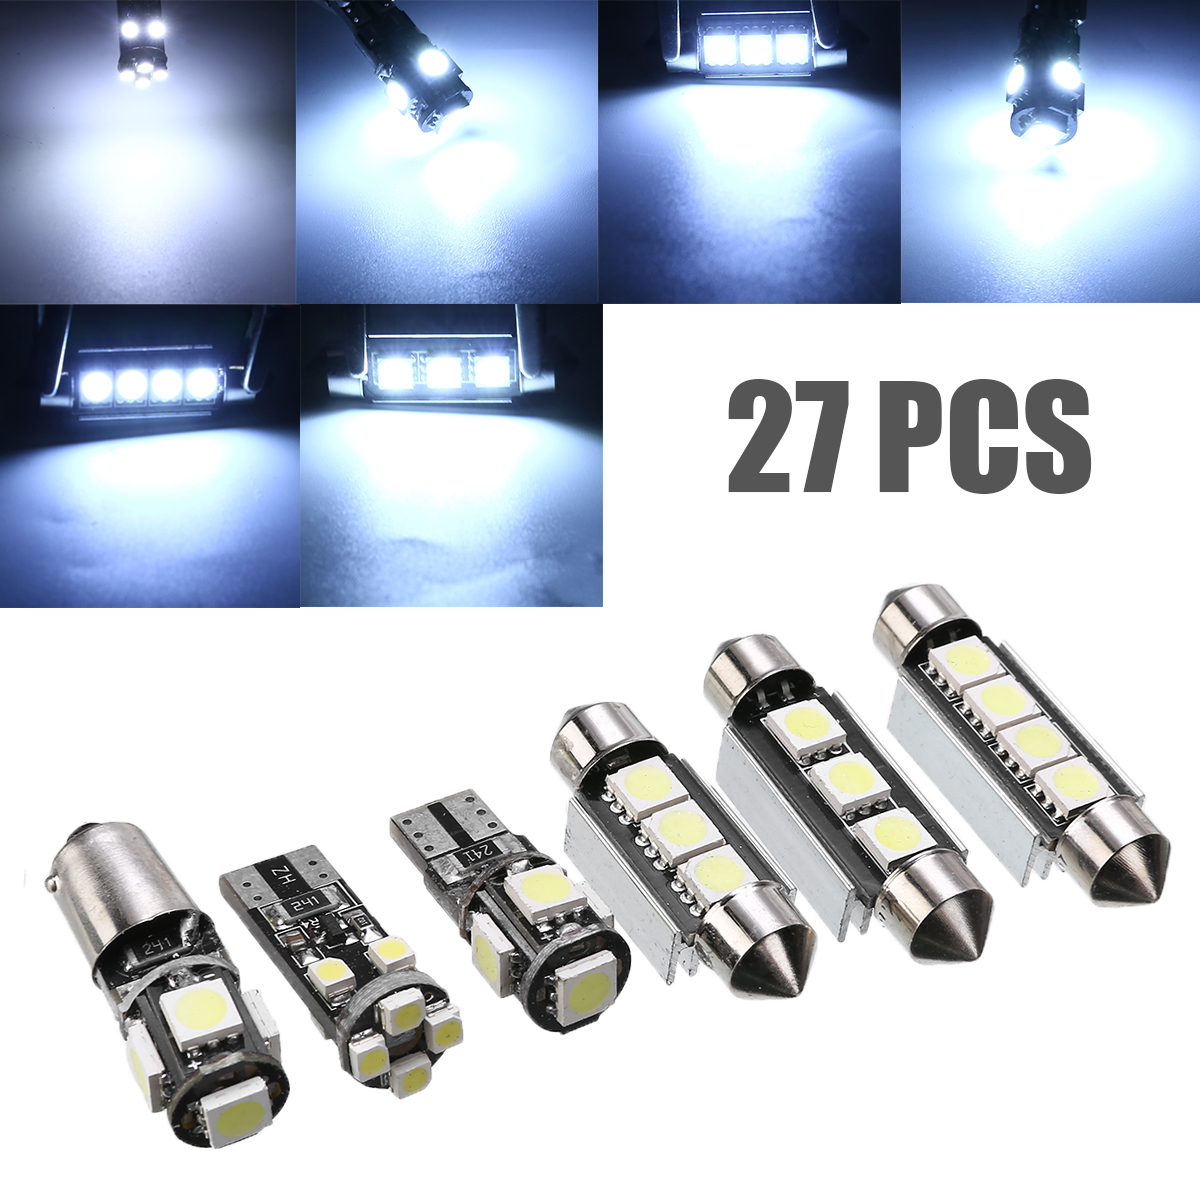 27pcs Car Auto Interior White LED Light Bulbs 6000K Lamp For Mercedes Benz E class <font><b>W211</b></font> 02-08 E320 E430 E500 <font><b>E55</b></font> <font><b>AMG</b></font> Accessories image